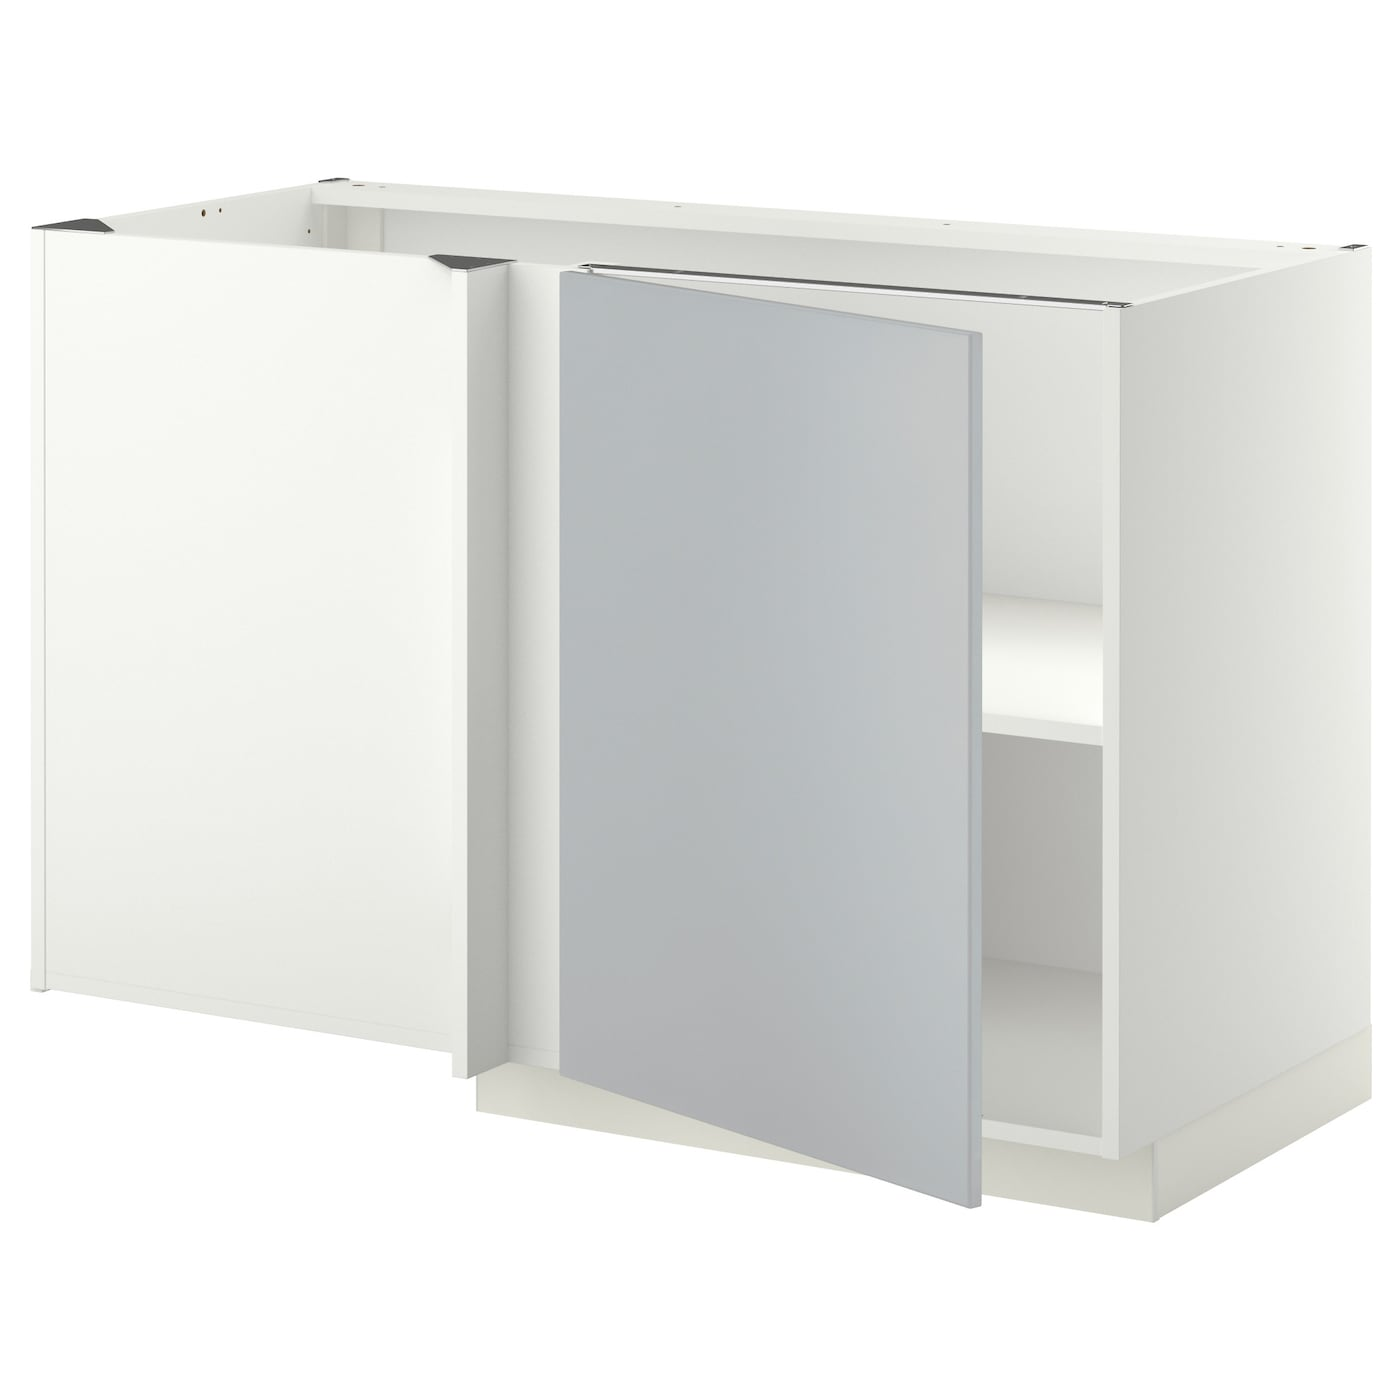 Ikea Metod Corner Base Cabinet With Shelf Adjule Adapt Ing According To Need